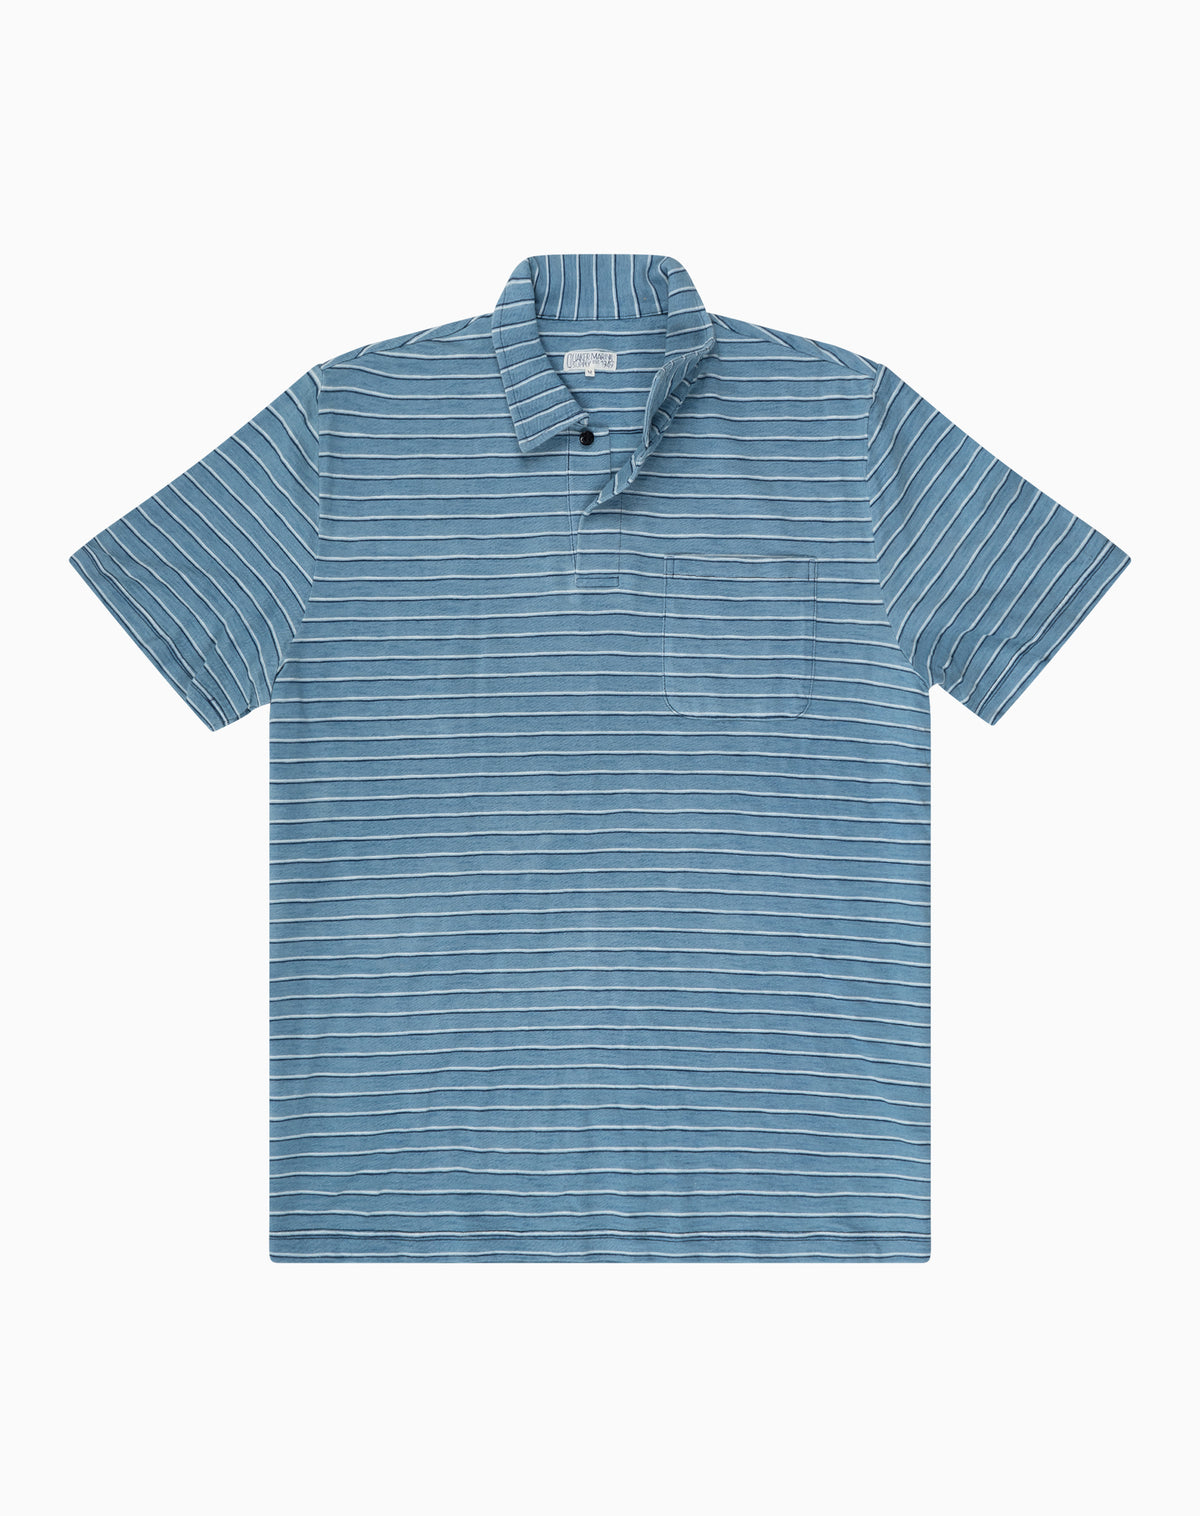 Polo in Light Wash Blue Stripe